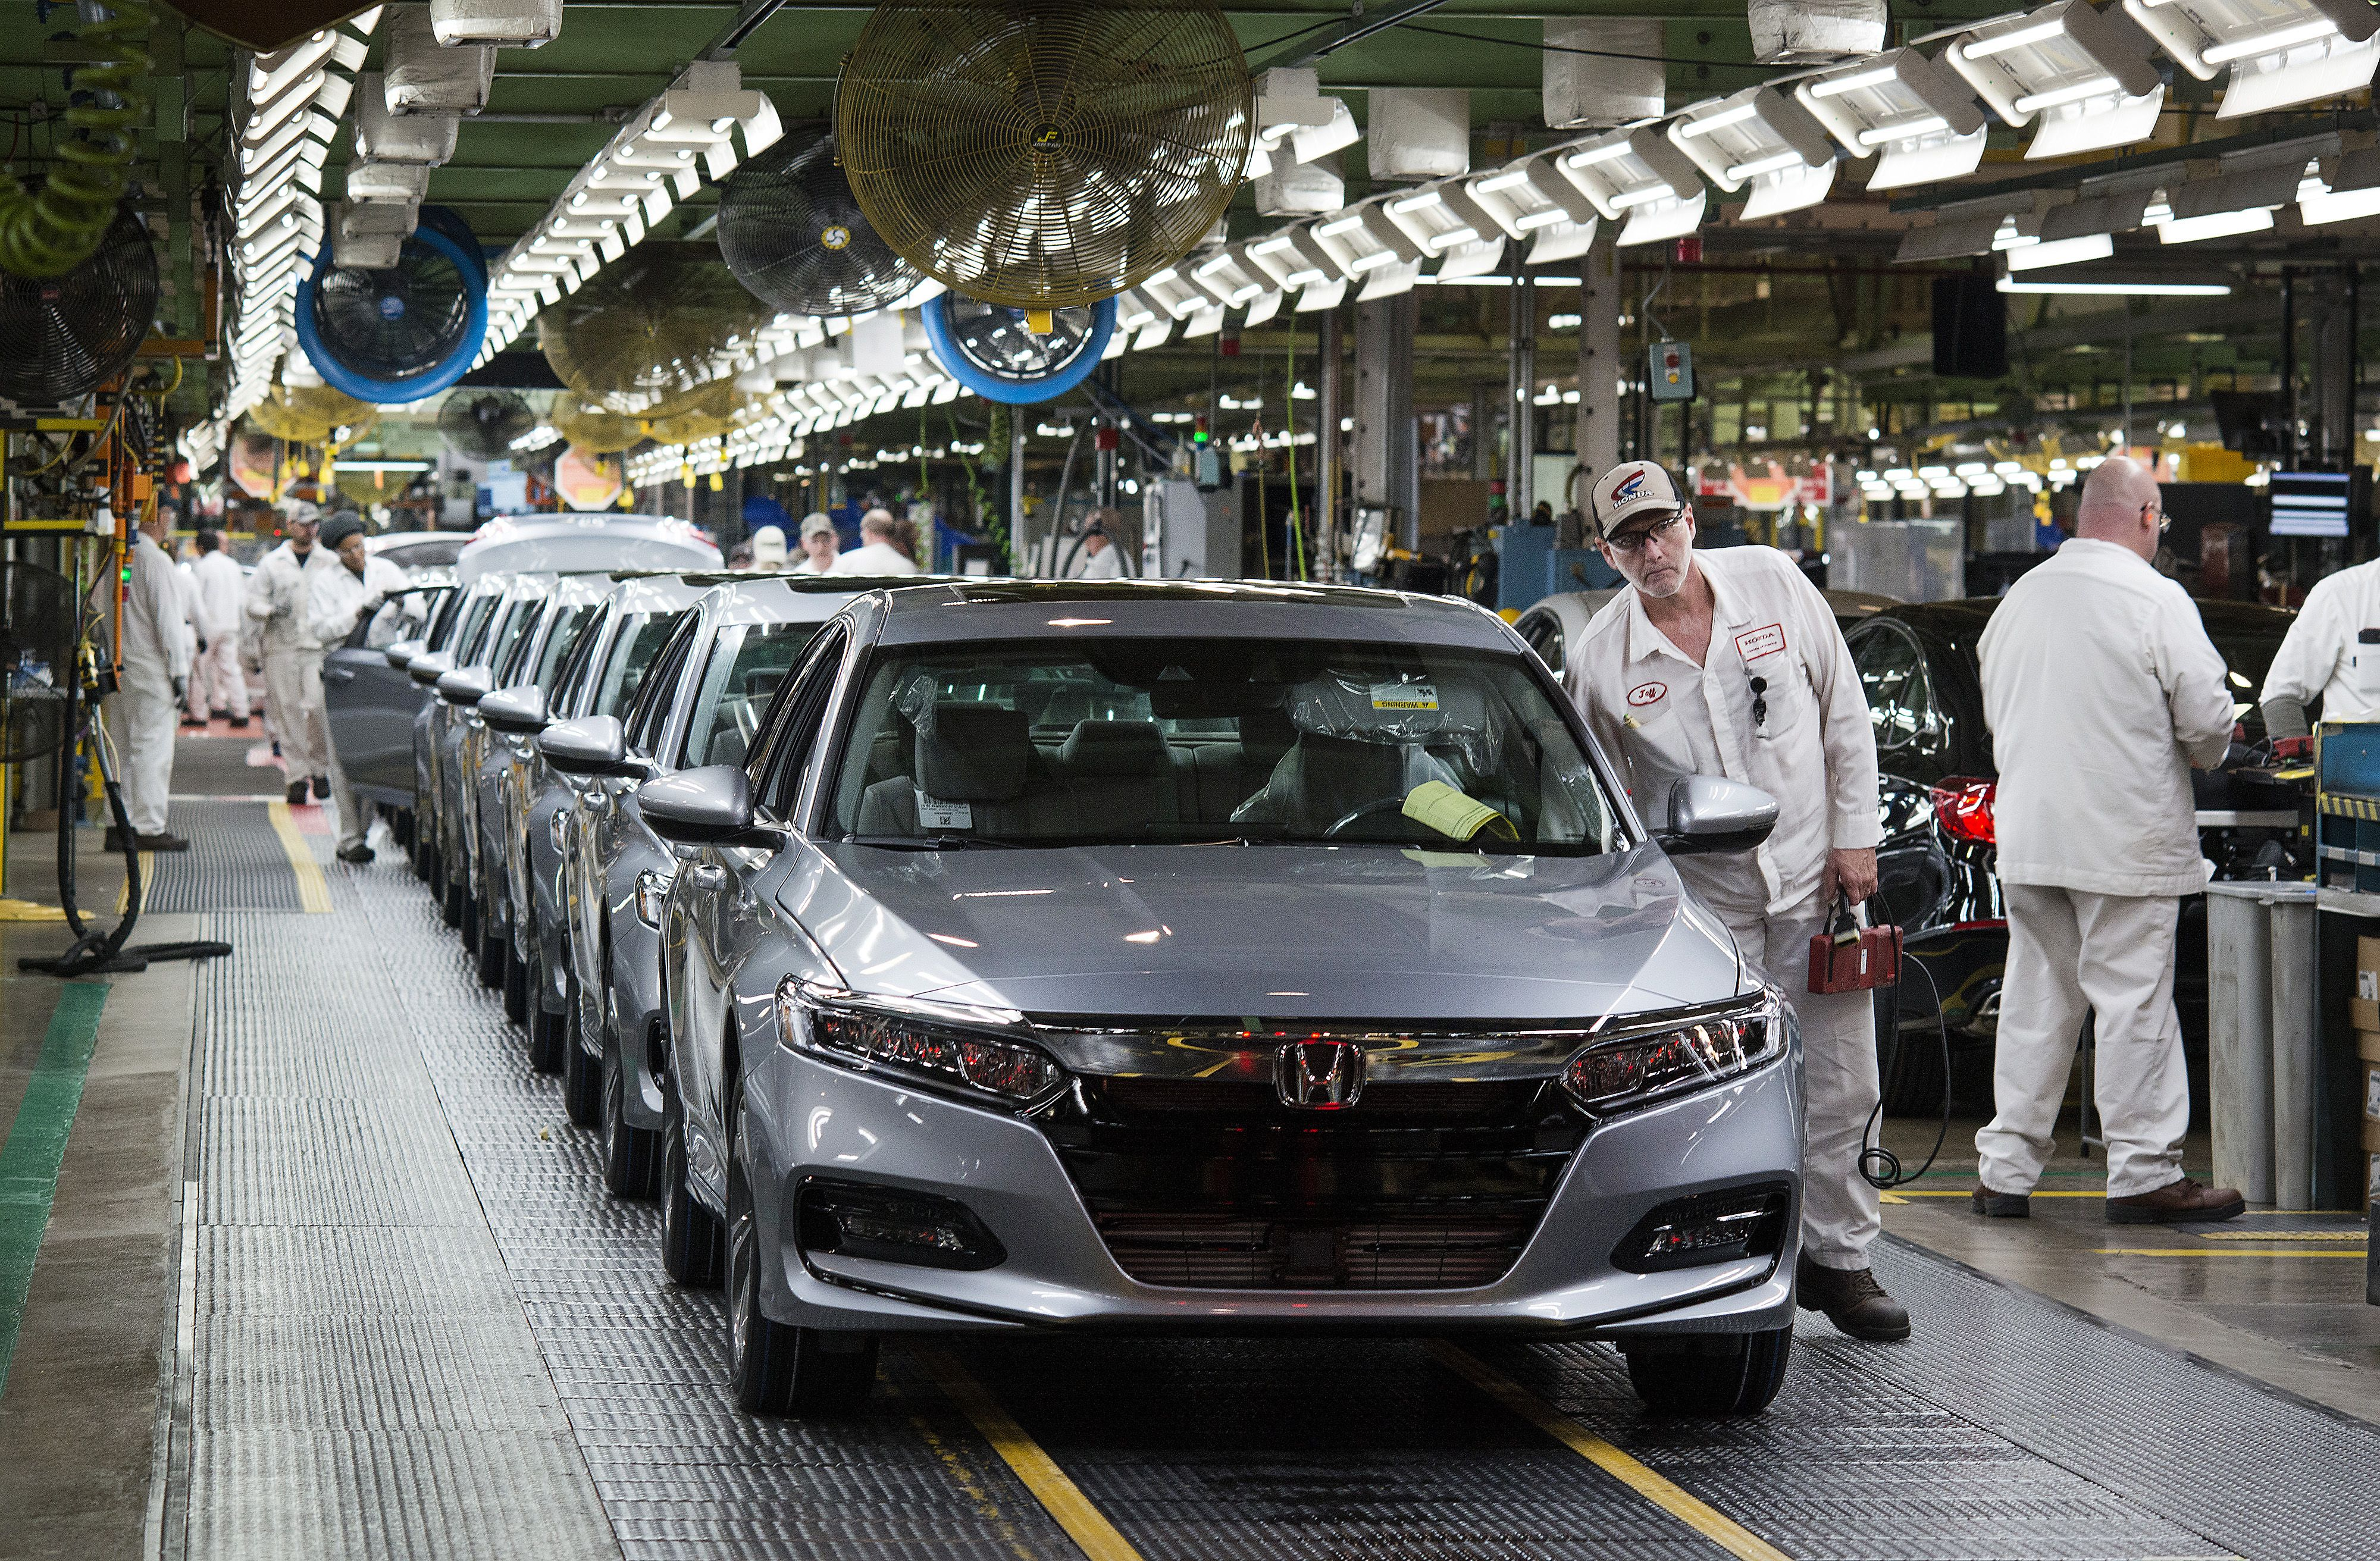 Japanese automakers tout all-time high US job creation pressure on Trump